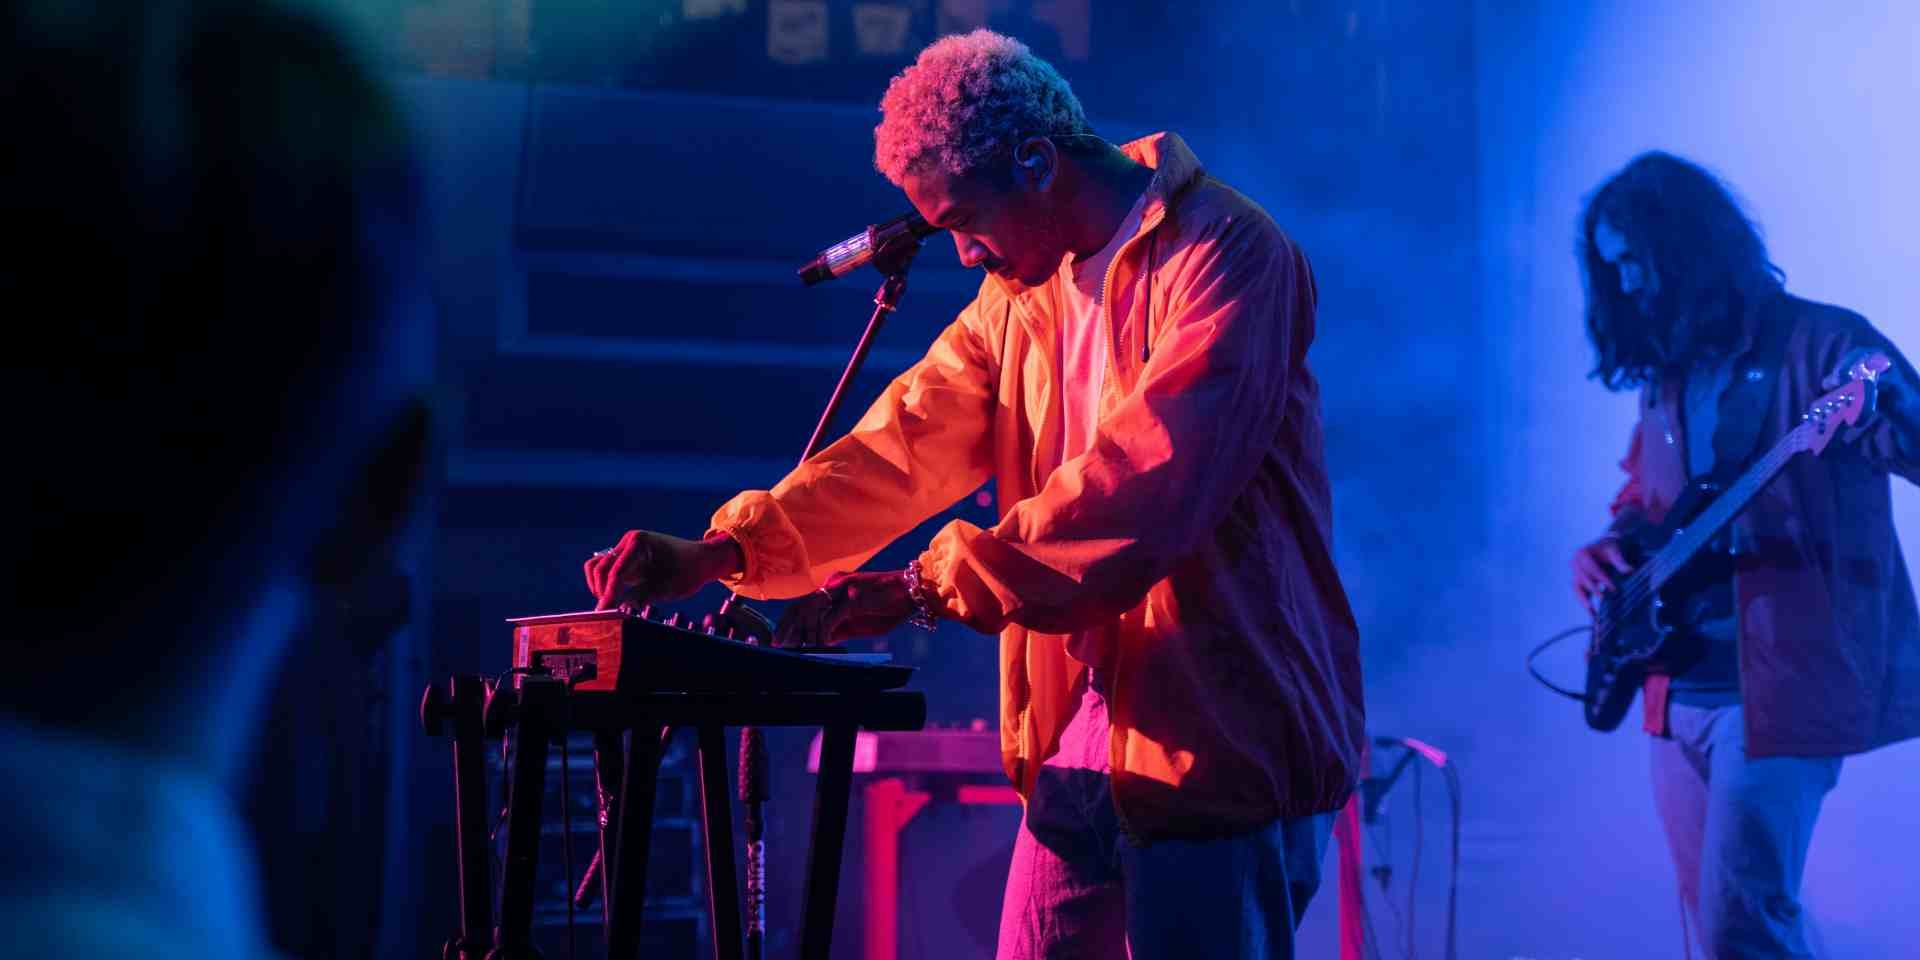 Toro y Moi captained a sweet, sensuous dance party in the heart of the CBD – gig review